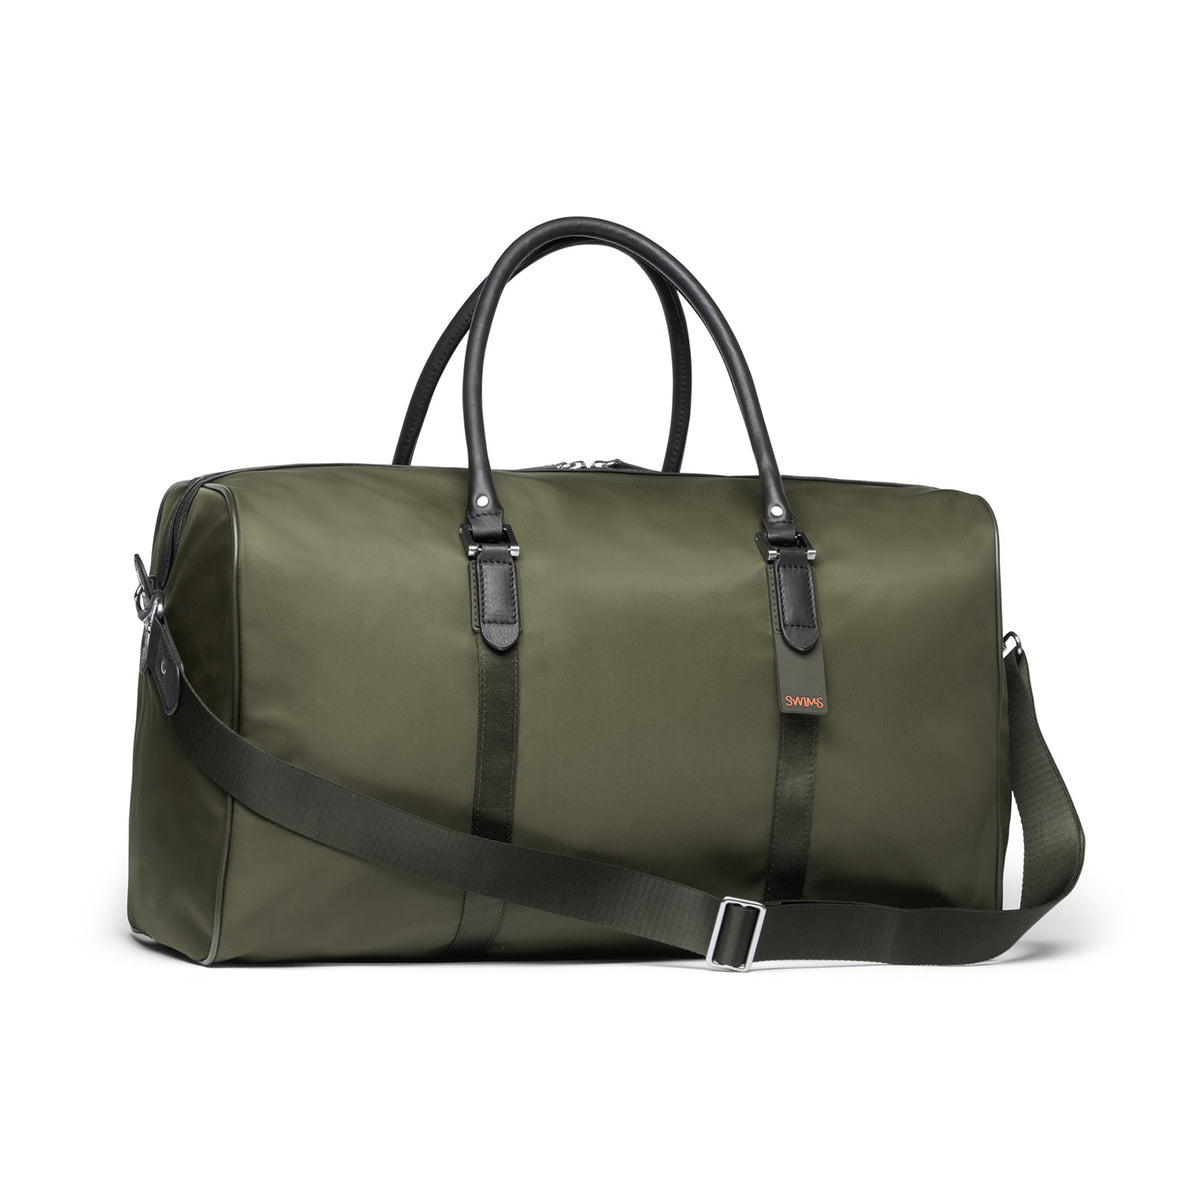 Boston Duffel Bag - background::white,variant::Olive